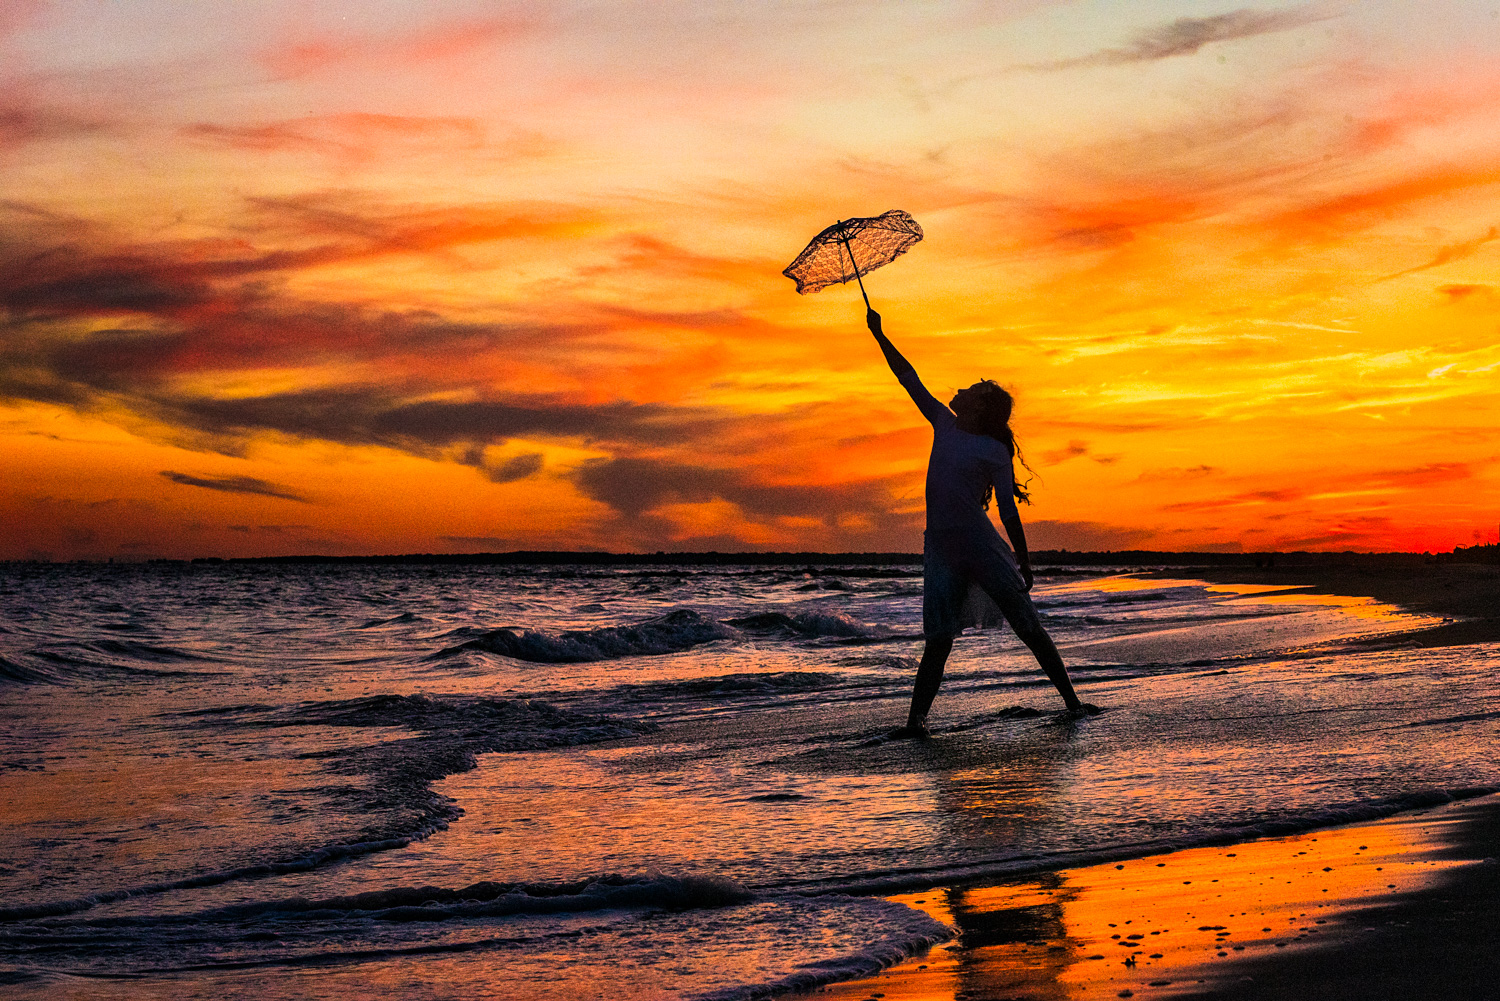 Silhouette of girl holding umbrella at Coney Island Beach by Picadilly Studios